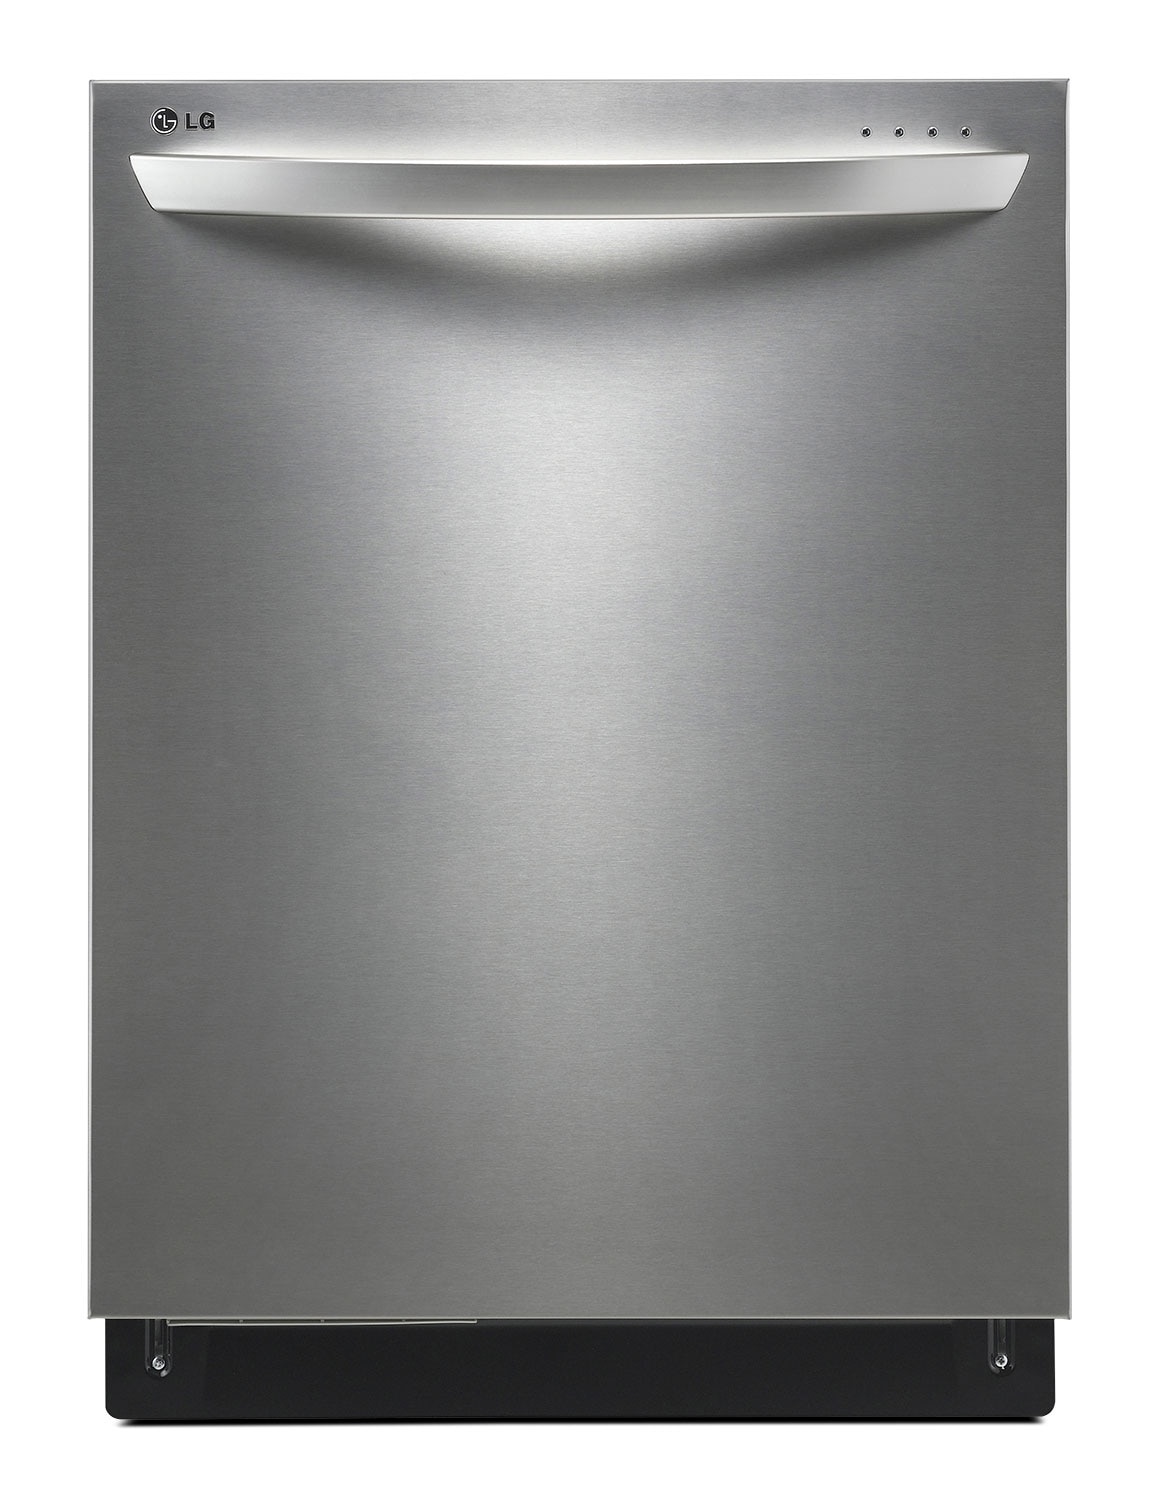 "LG Appliances Stainless Steel 24"" Dishwasher - LDF8874ST"